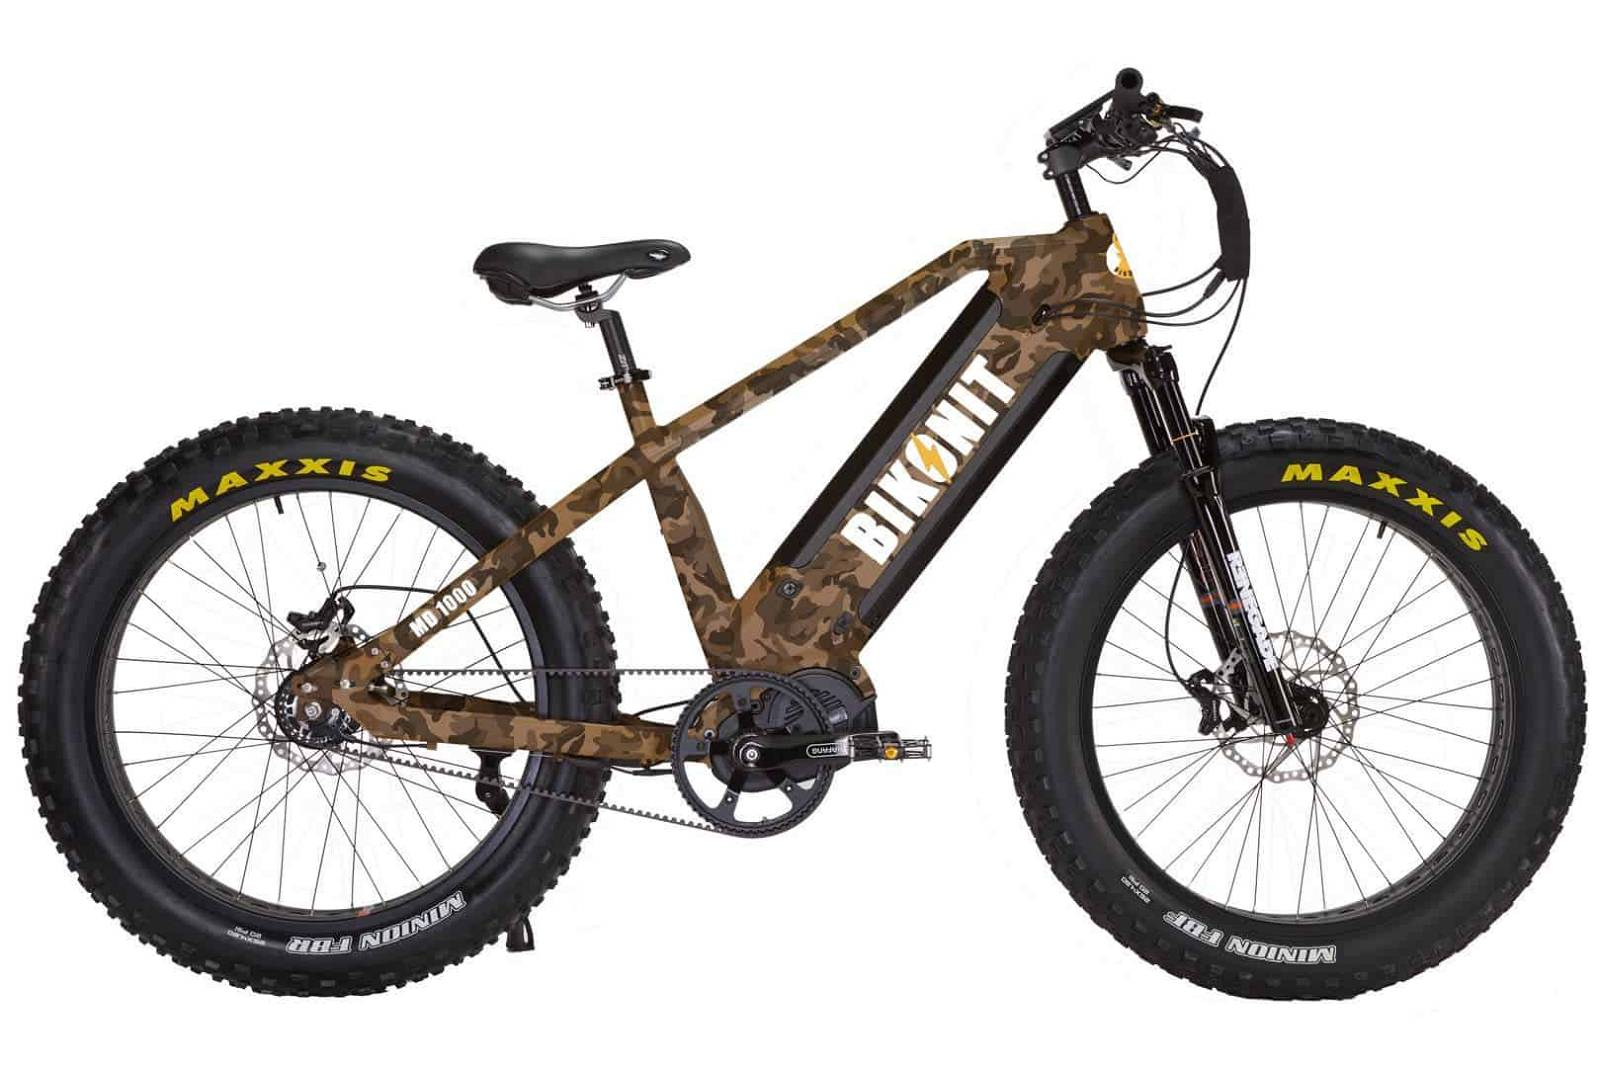 Bikonit Warthog MD 1000 Electric Hunting Bike